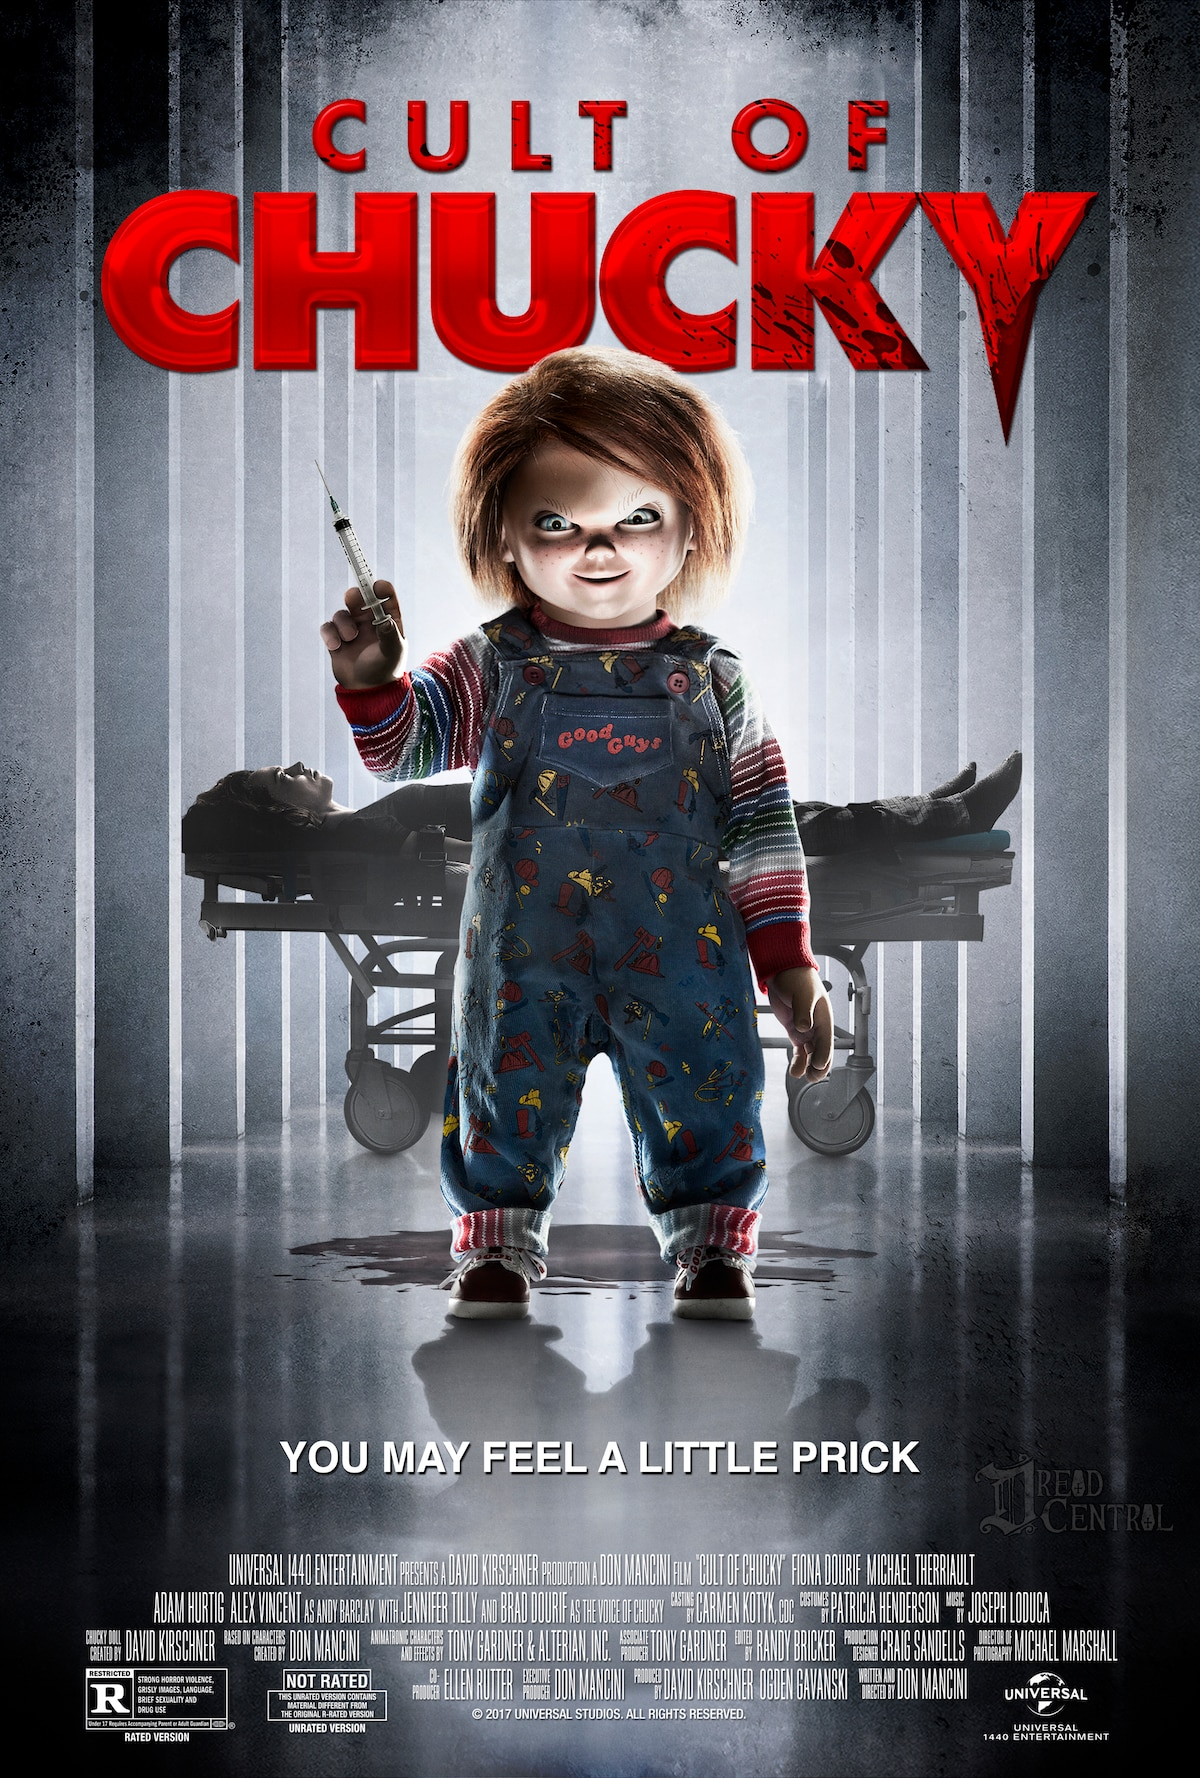 Cult of Chucky Poster theatrical2 - Don Mancini Says We'll See Glen/Glenda Again One Day in a Chucky Film